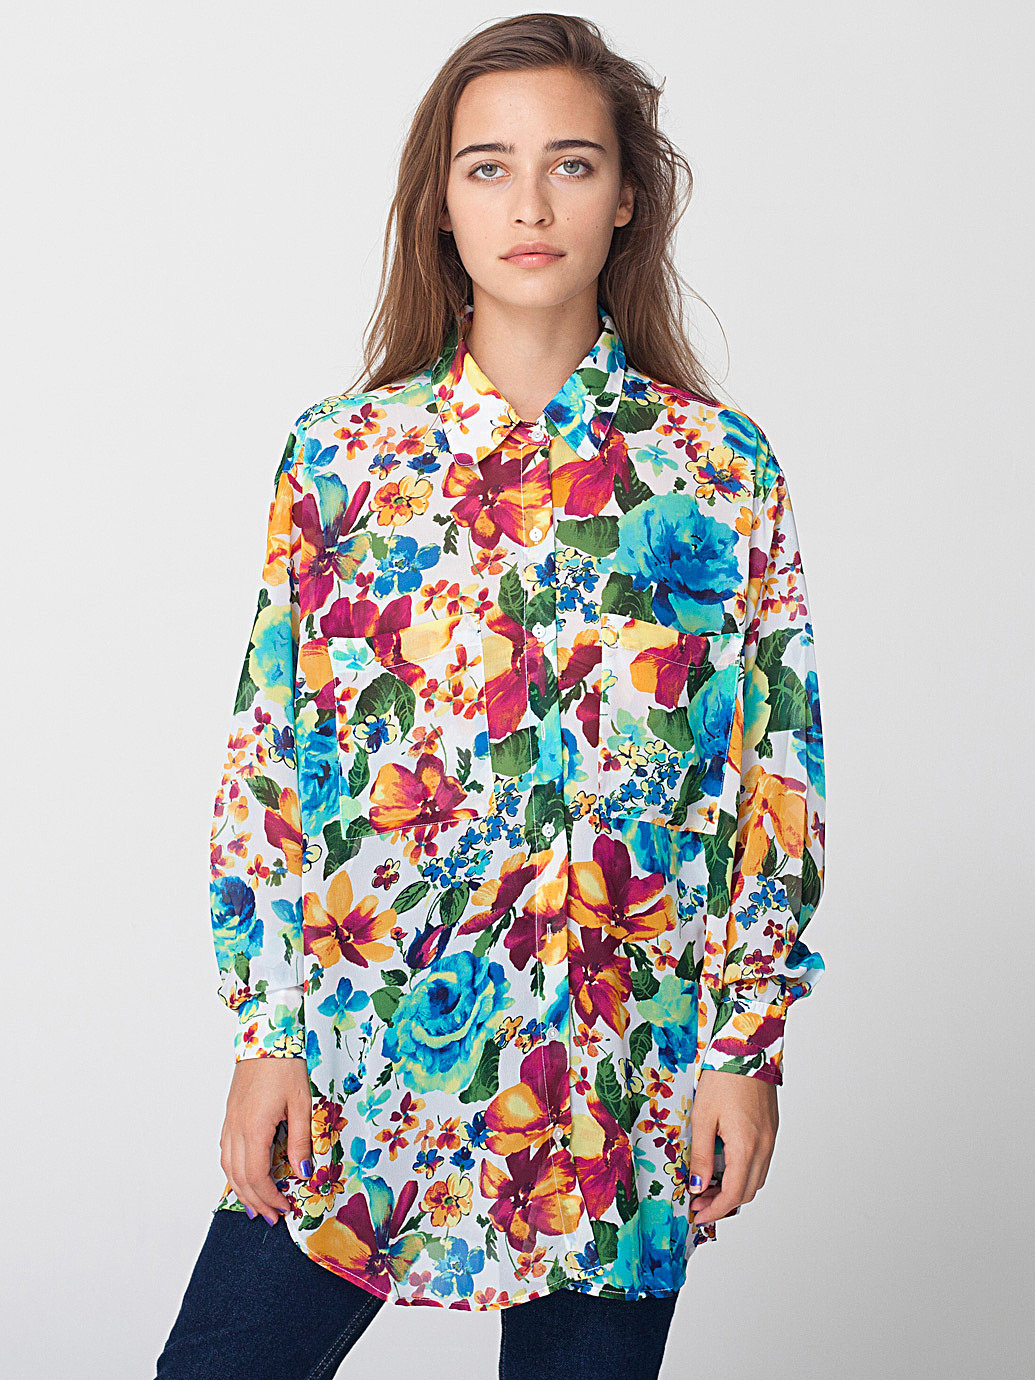 Floral chiffon oversized button